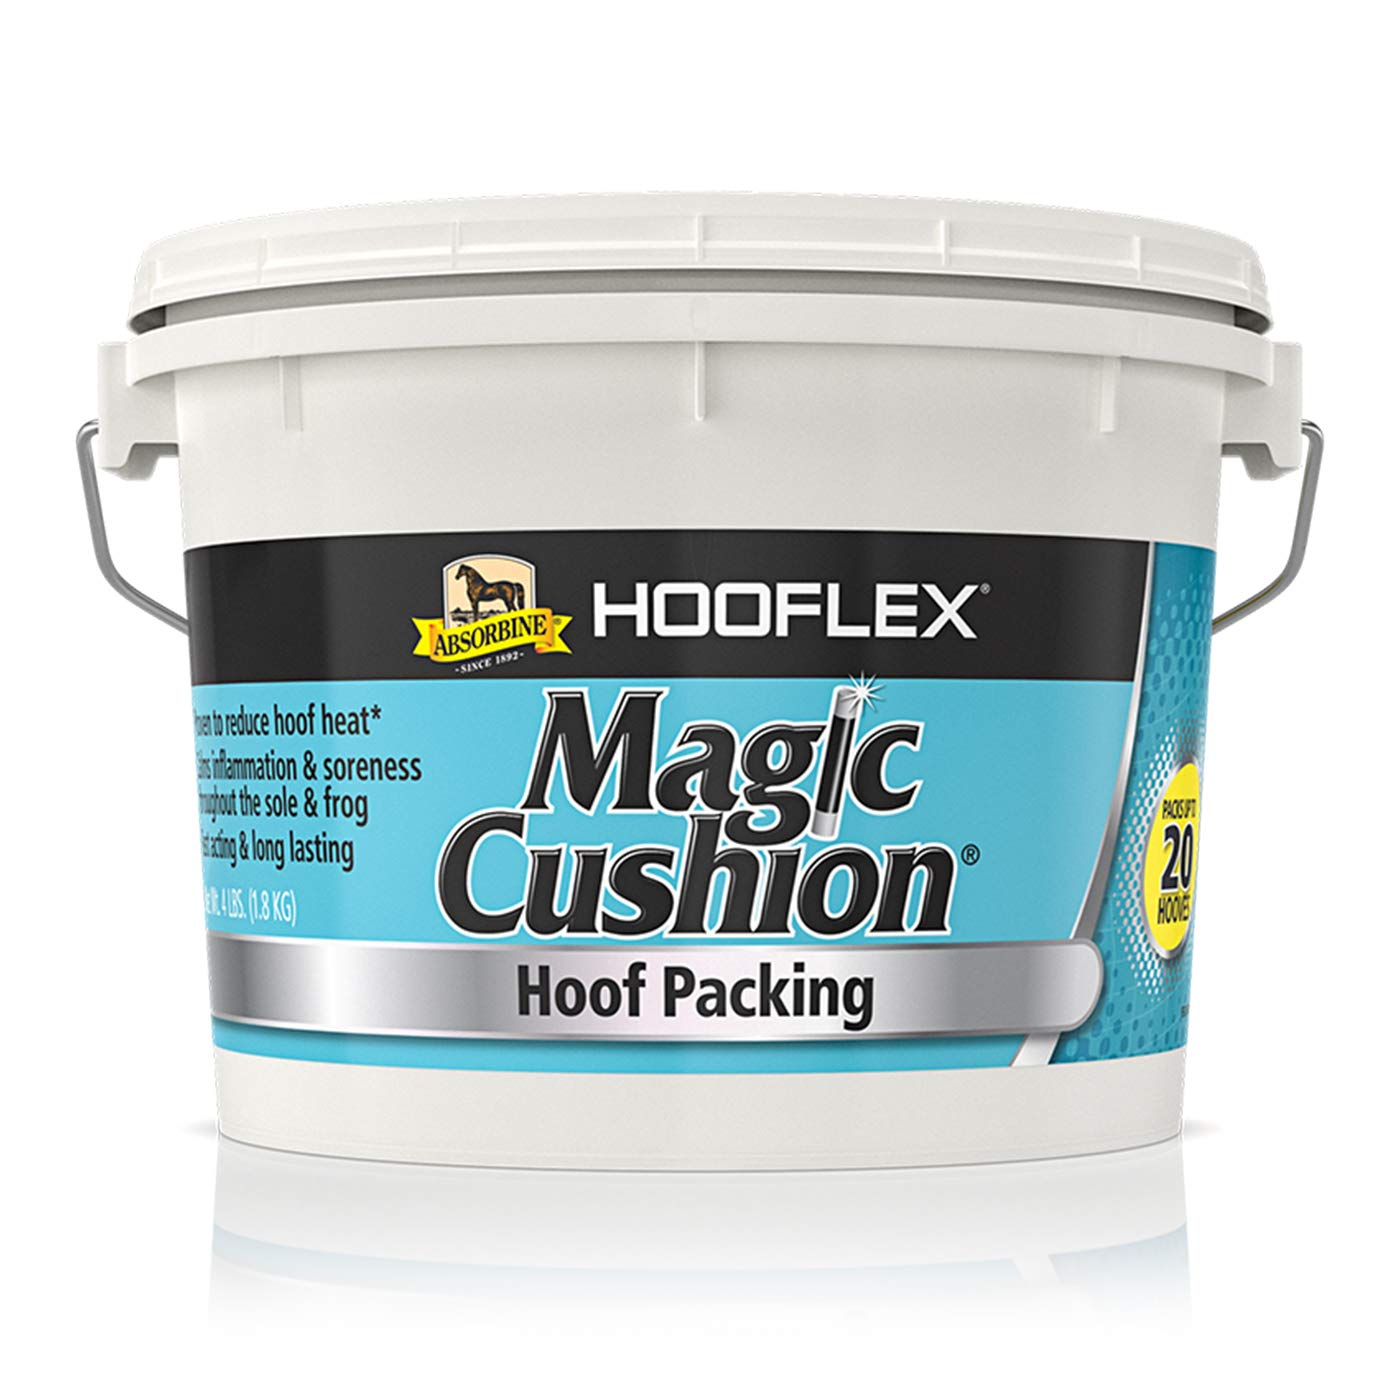 W F YOUNG 068029 Magic Cushion Hoof Packing 4LBS by Absorbine